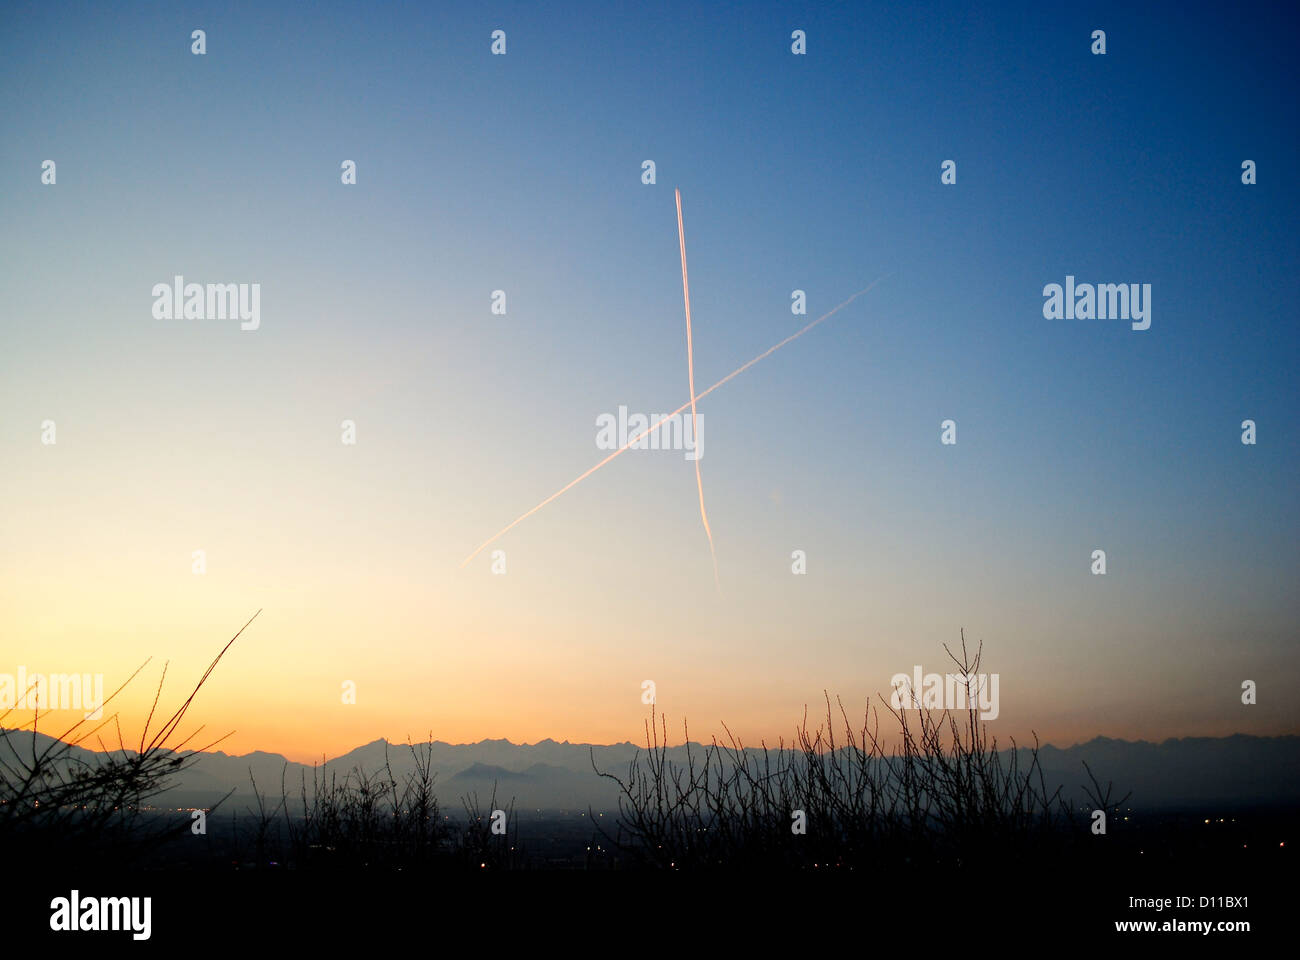 Aircraft trails crossing each others on Turin skyes at the dusk with Alps background. - Stock Image